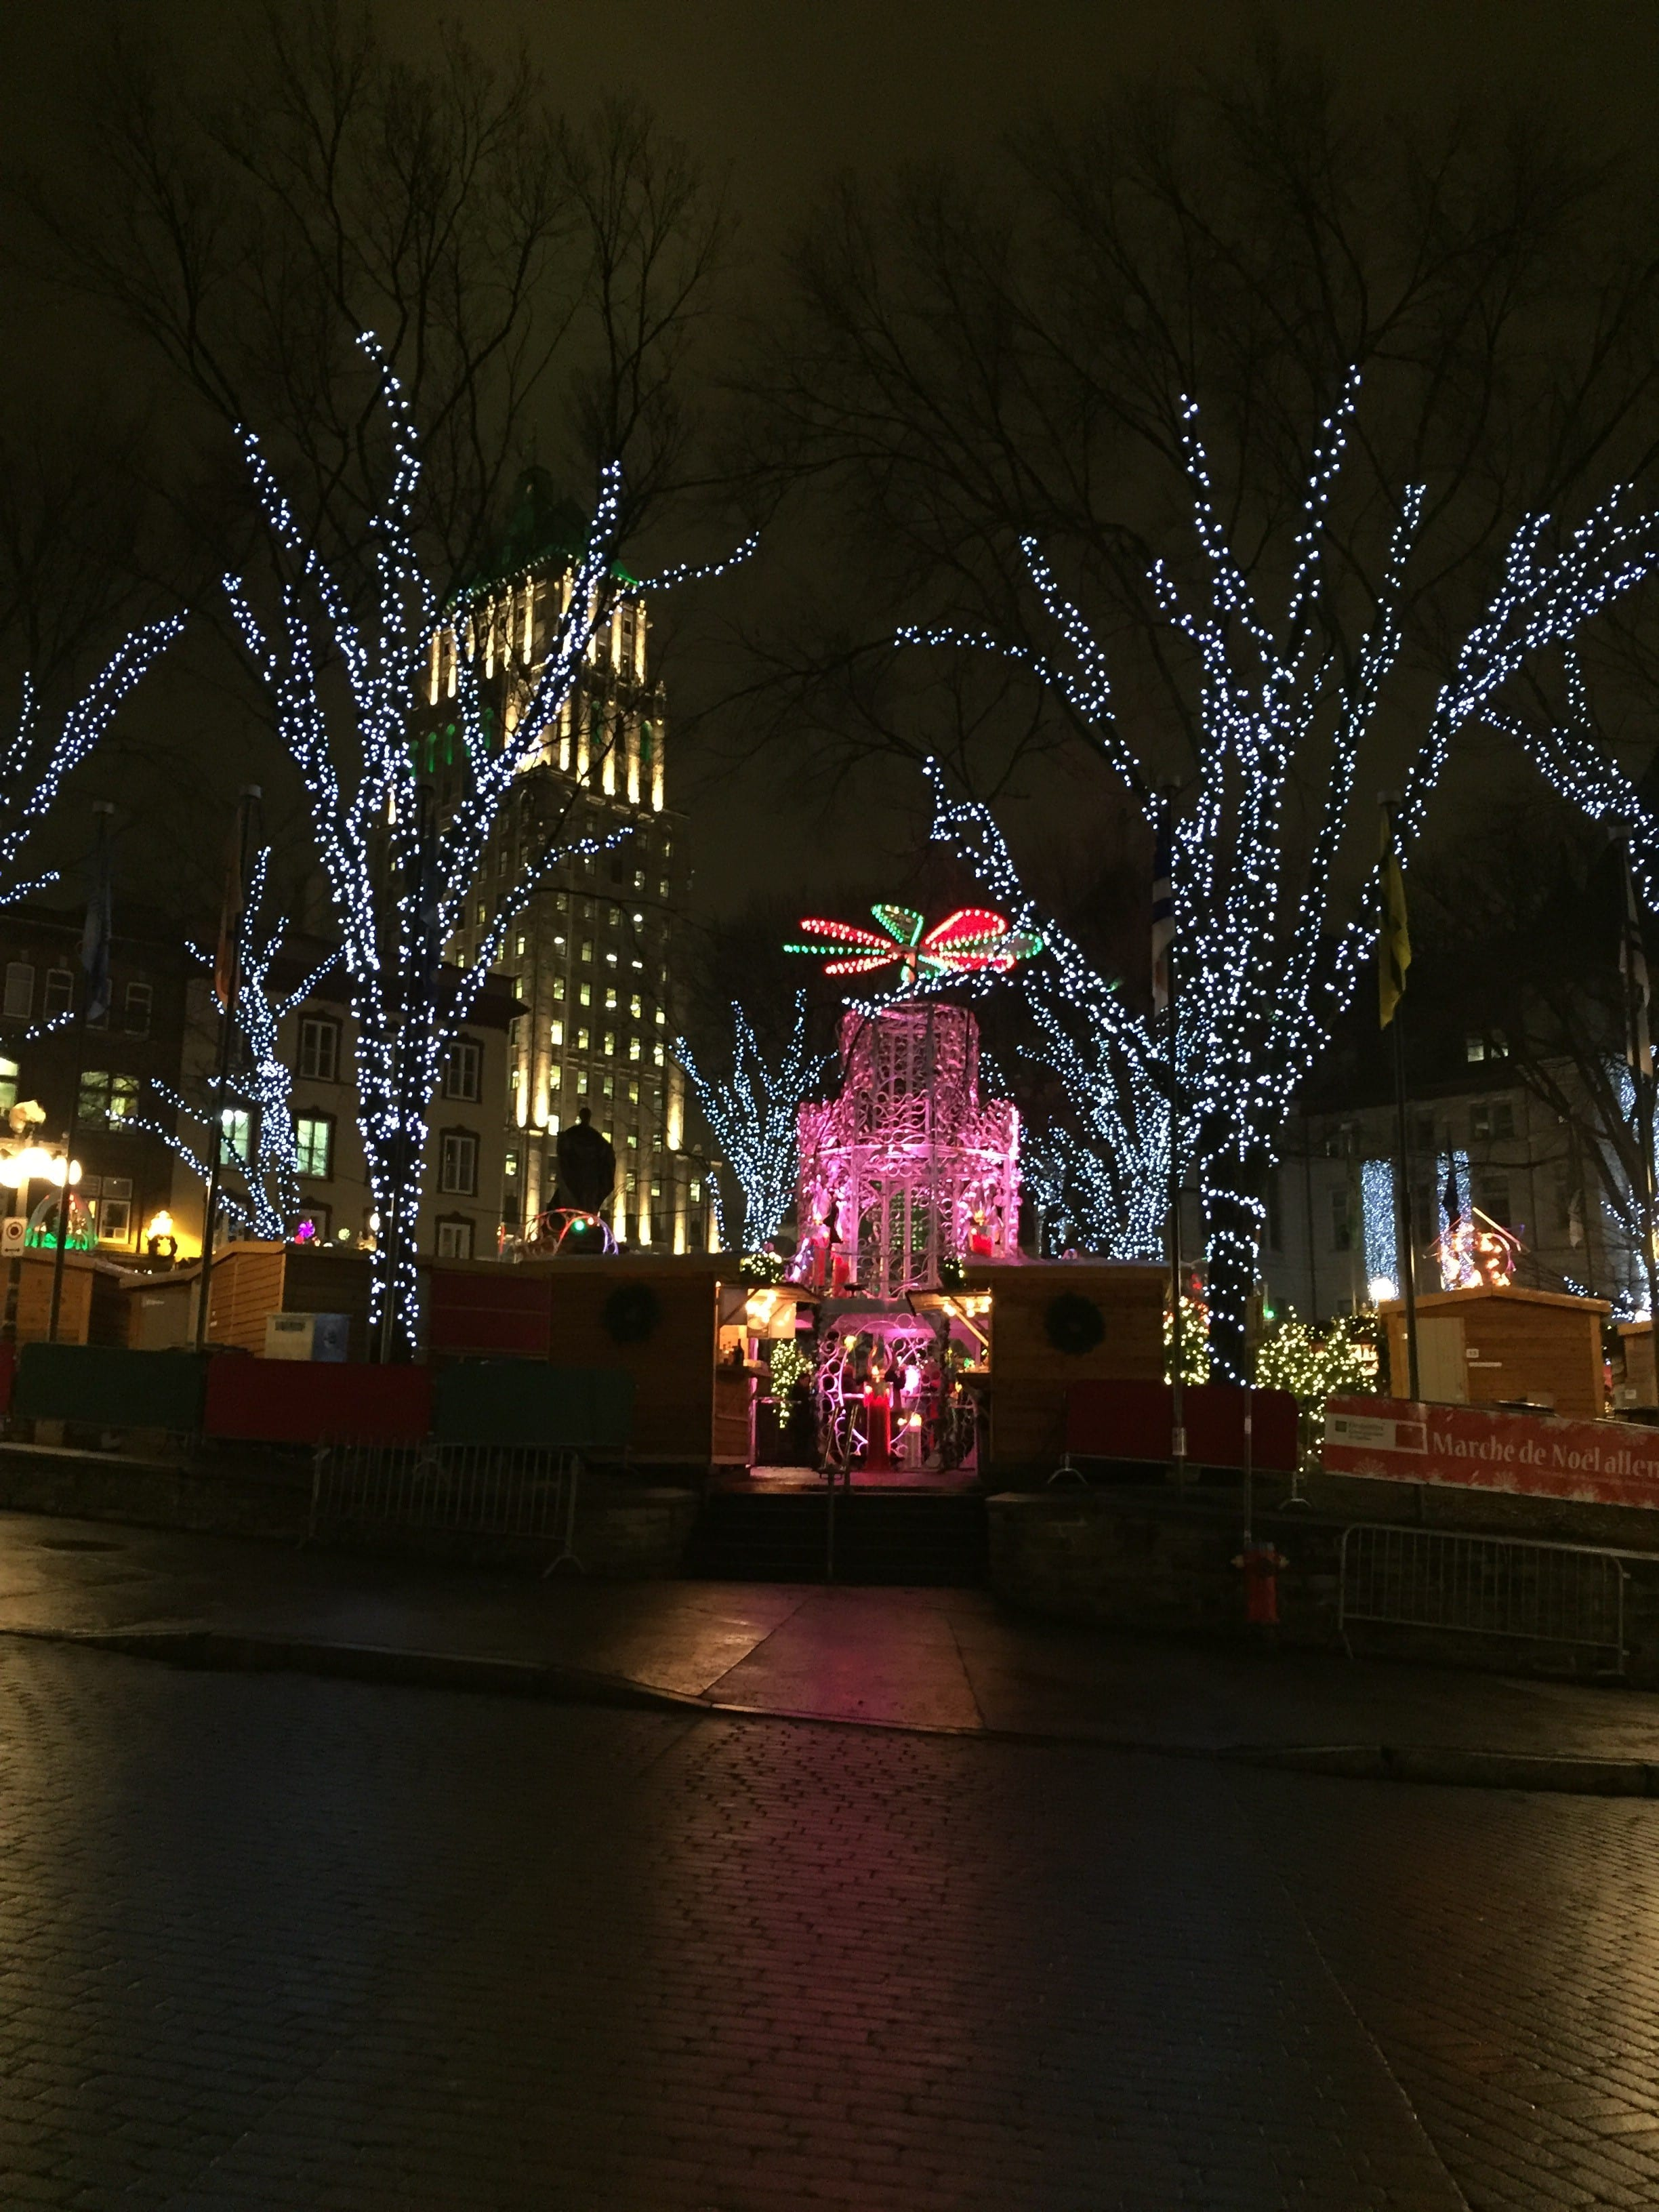 Quebec City: The entrance to the Christmas Market